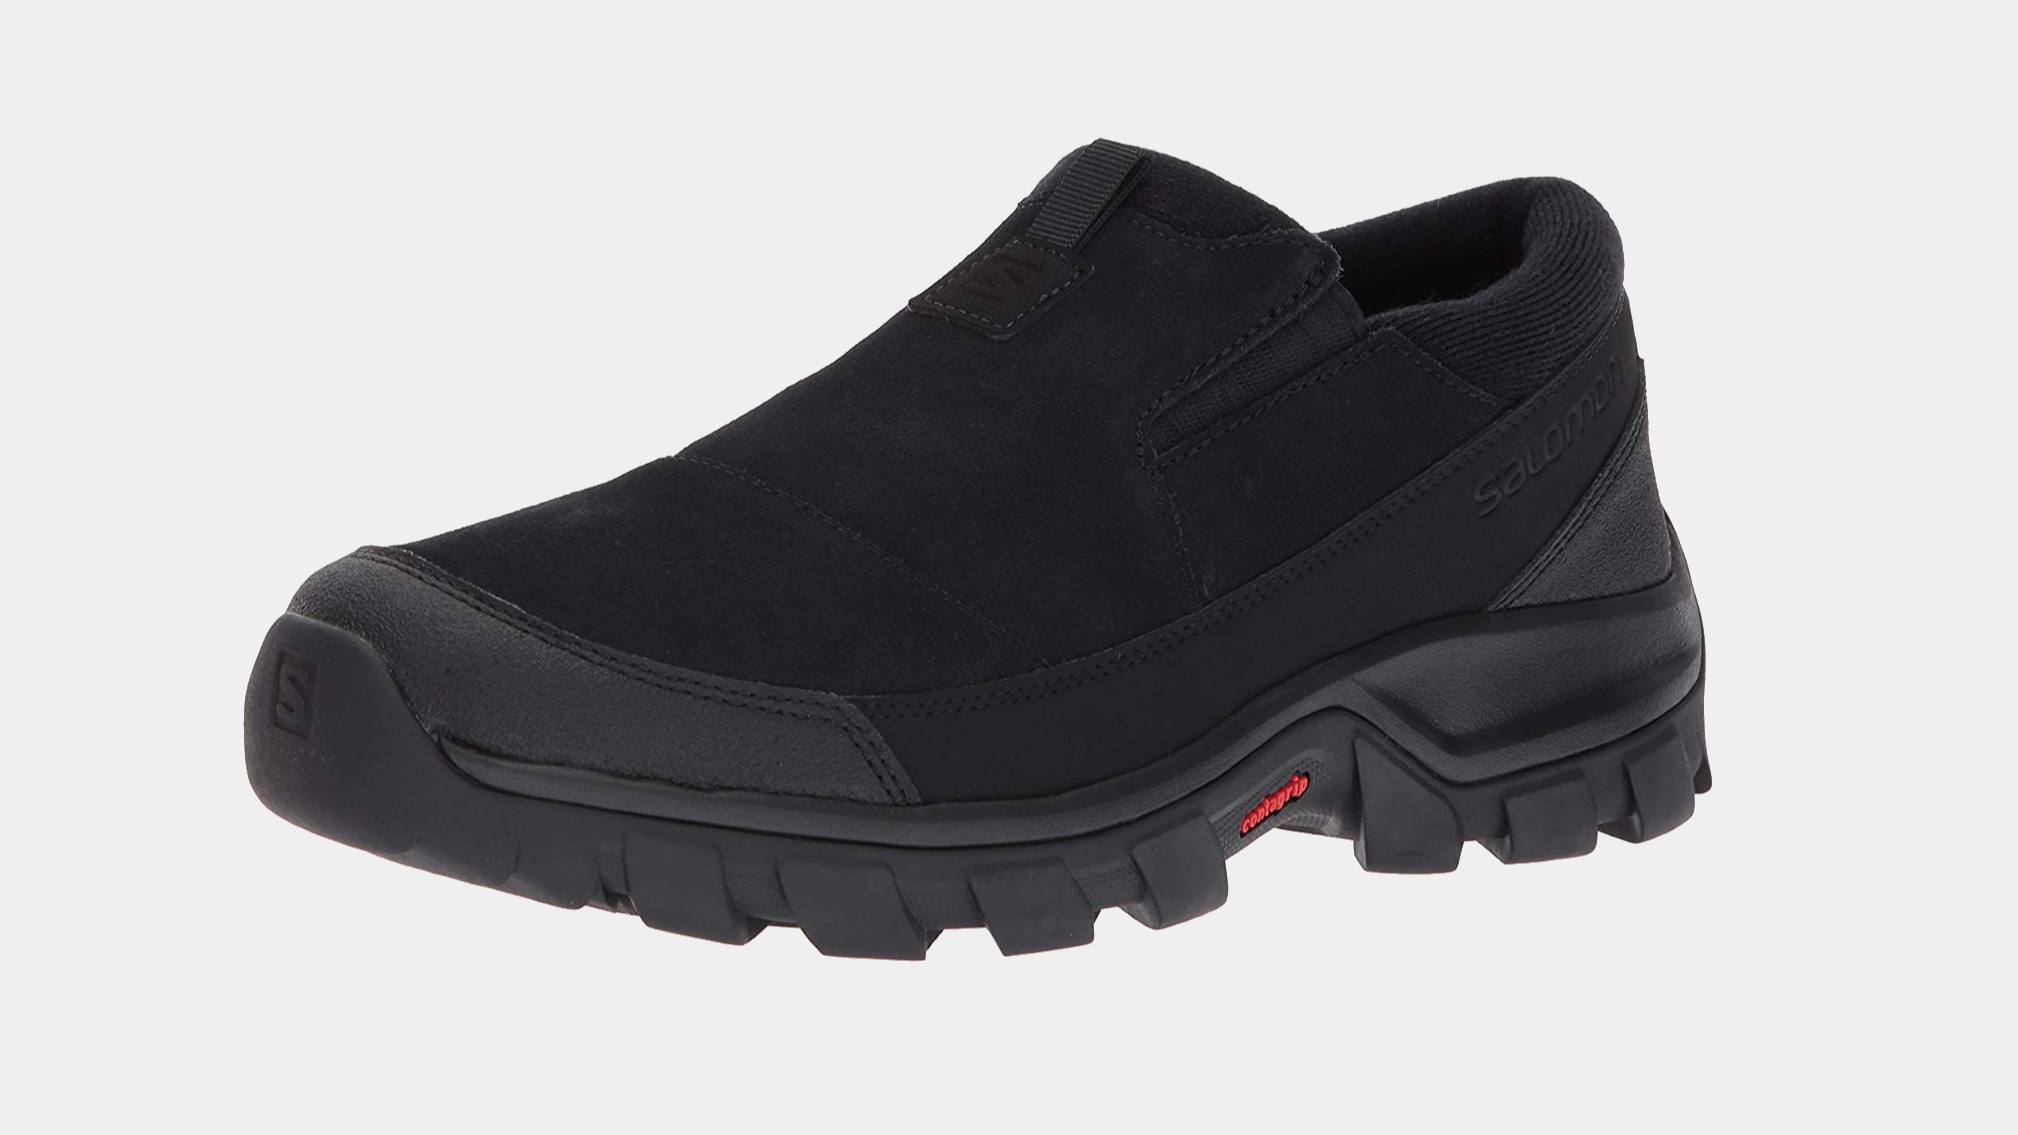 Winter Shoes Perfect for Snow, Ice